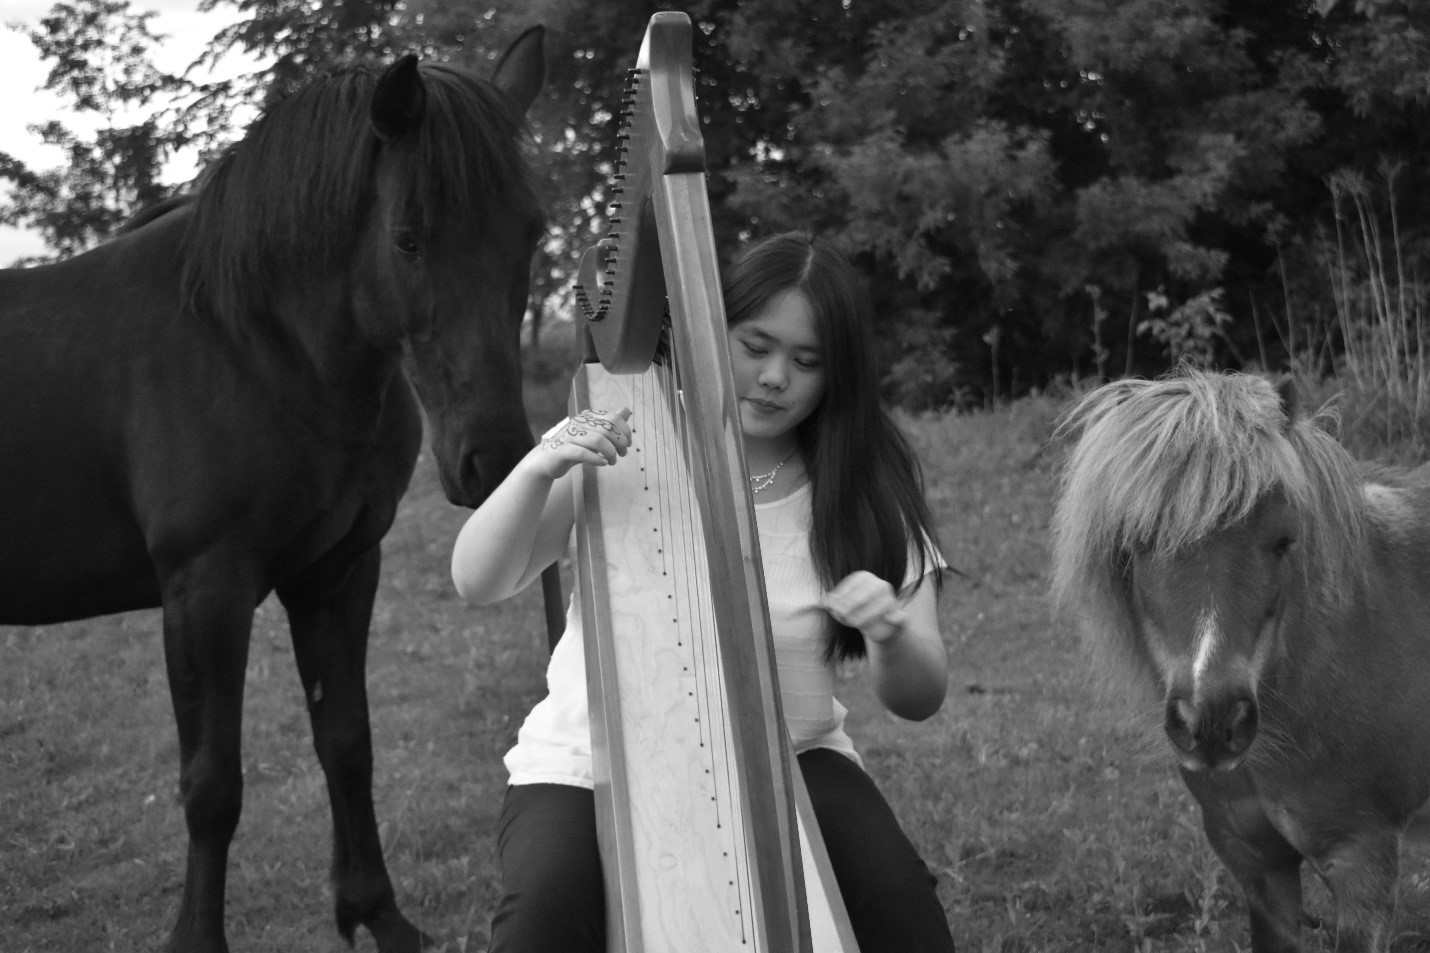 My horses: Bailey (left) and Hoss (right) listening to me play the harp.